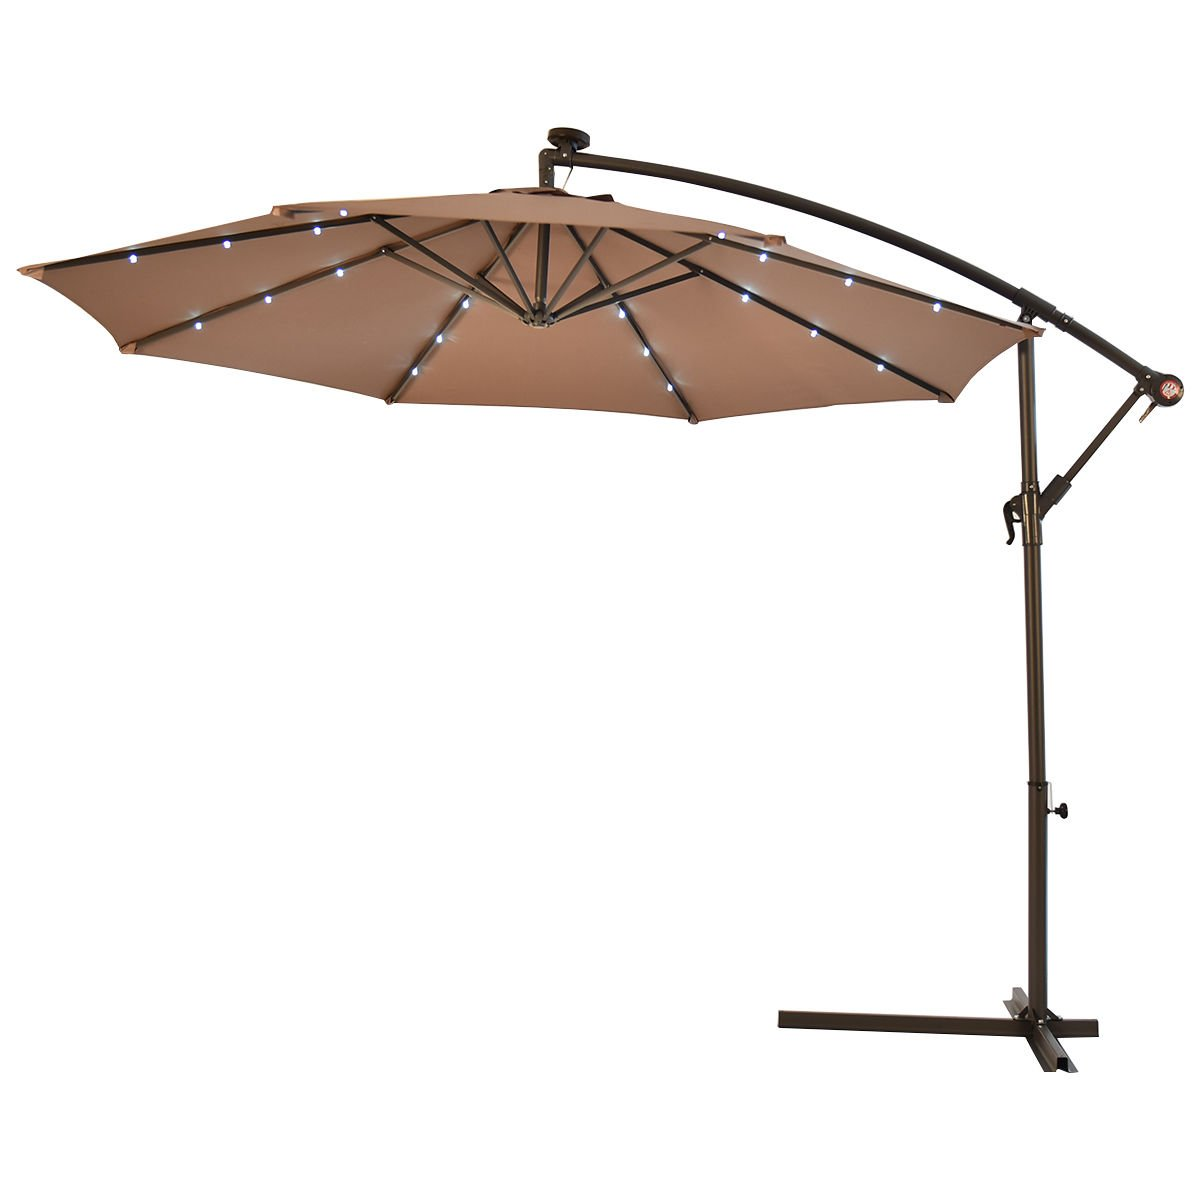 10' Hanging Solar LED Umbrella Patio Sun Shade Offset Market W/Base Tan by Unknown